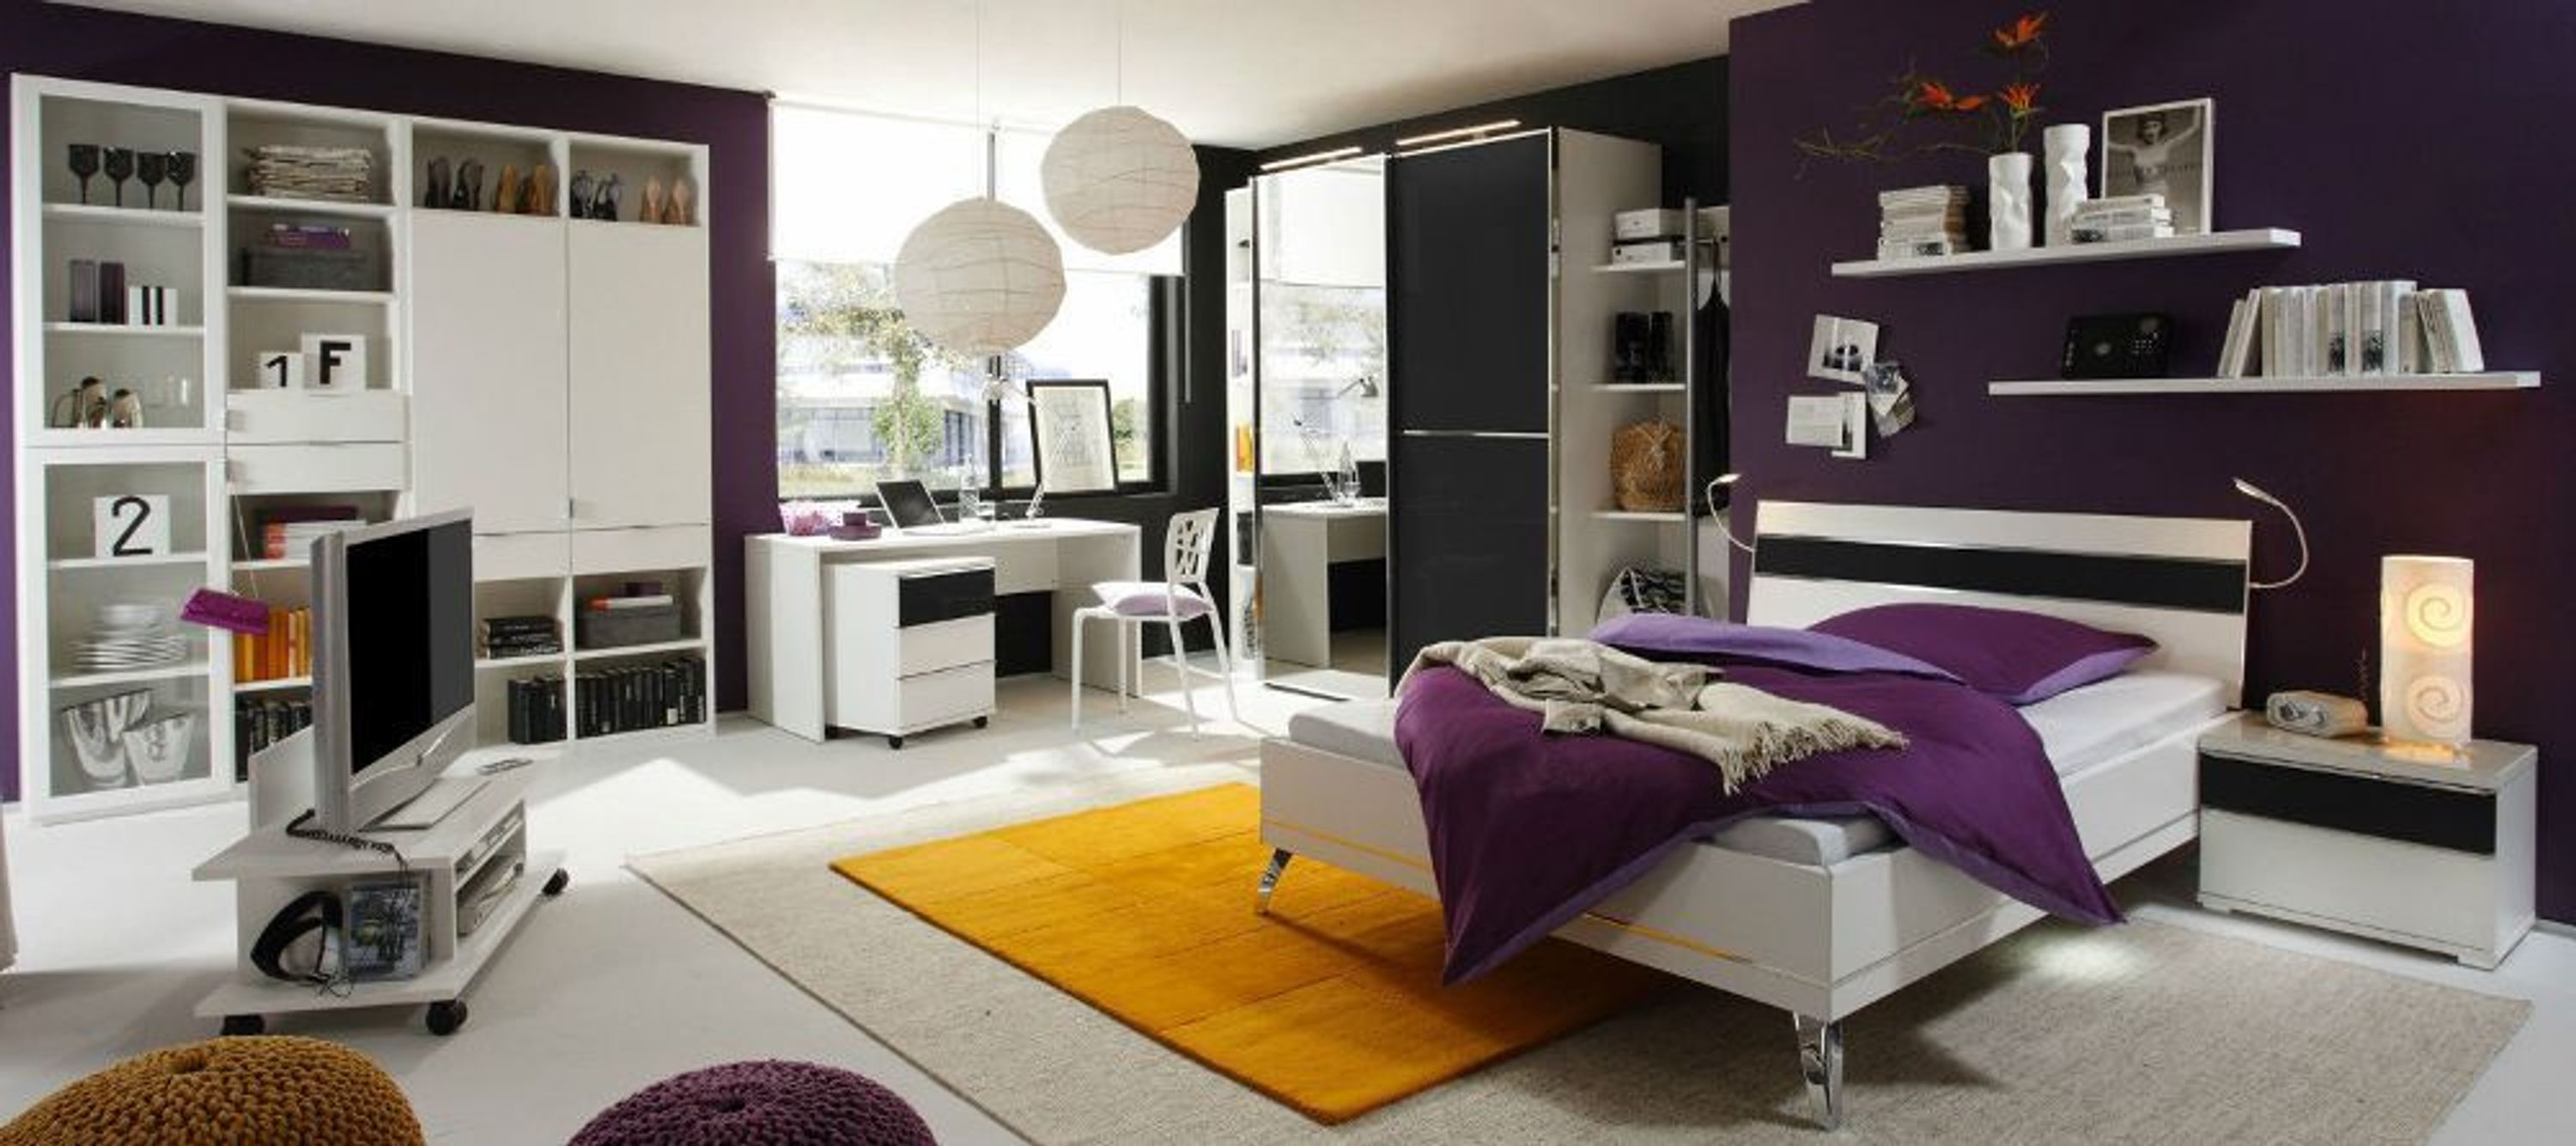 staud single wohnen sinfonie plus mini haushalt single wohnung einrichten kaufen bei. Black Bedroom Furniture Sets. Home Design Ideas